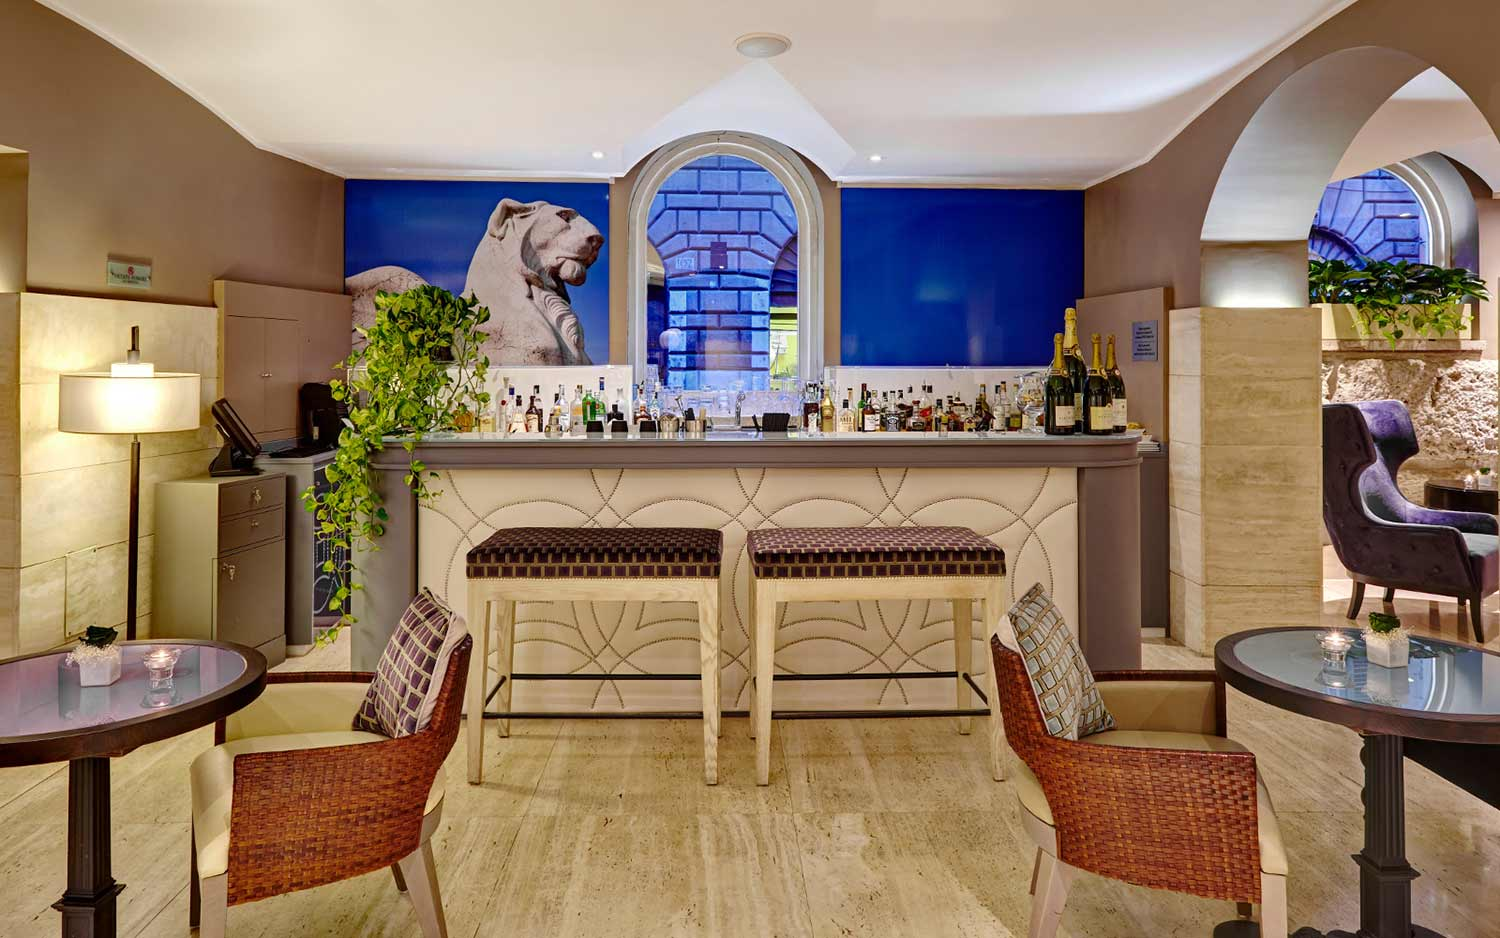 Hotel indigo rome st george boutique hotel in roma for Hotel boutique rome